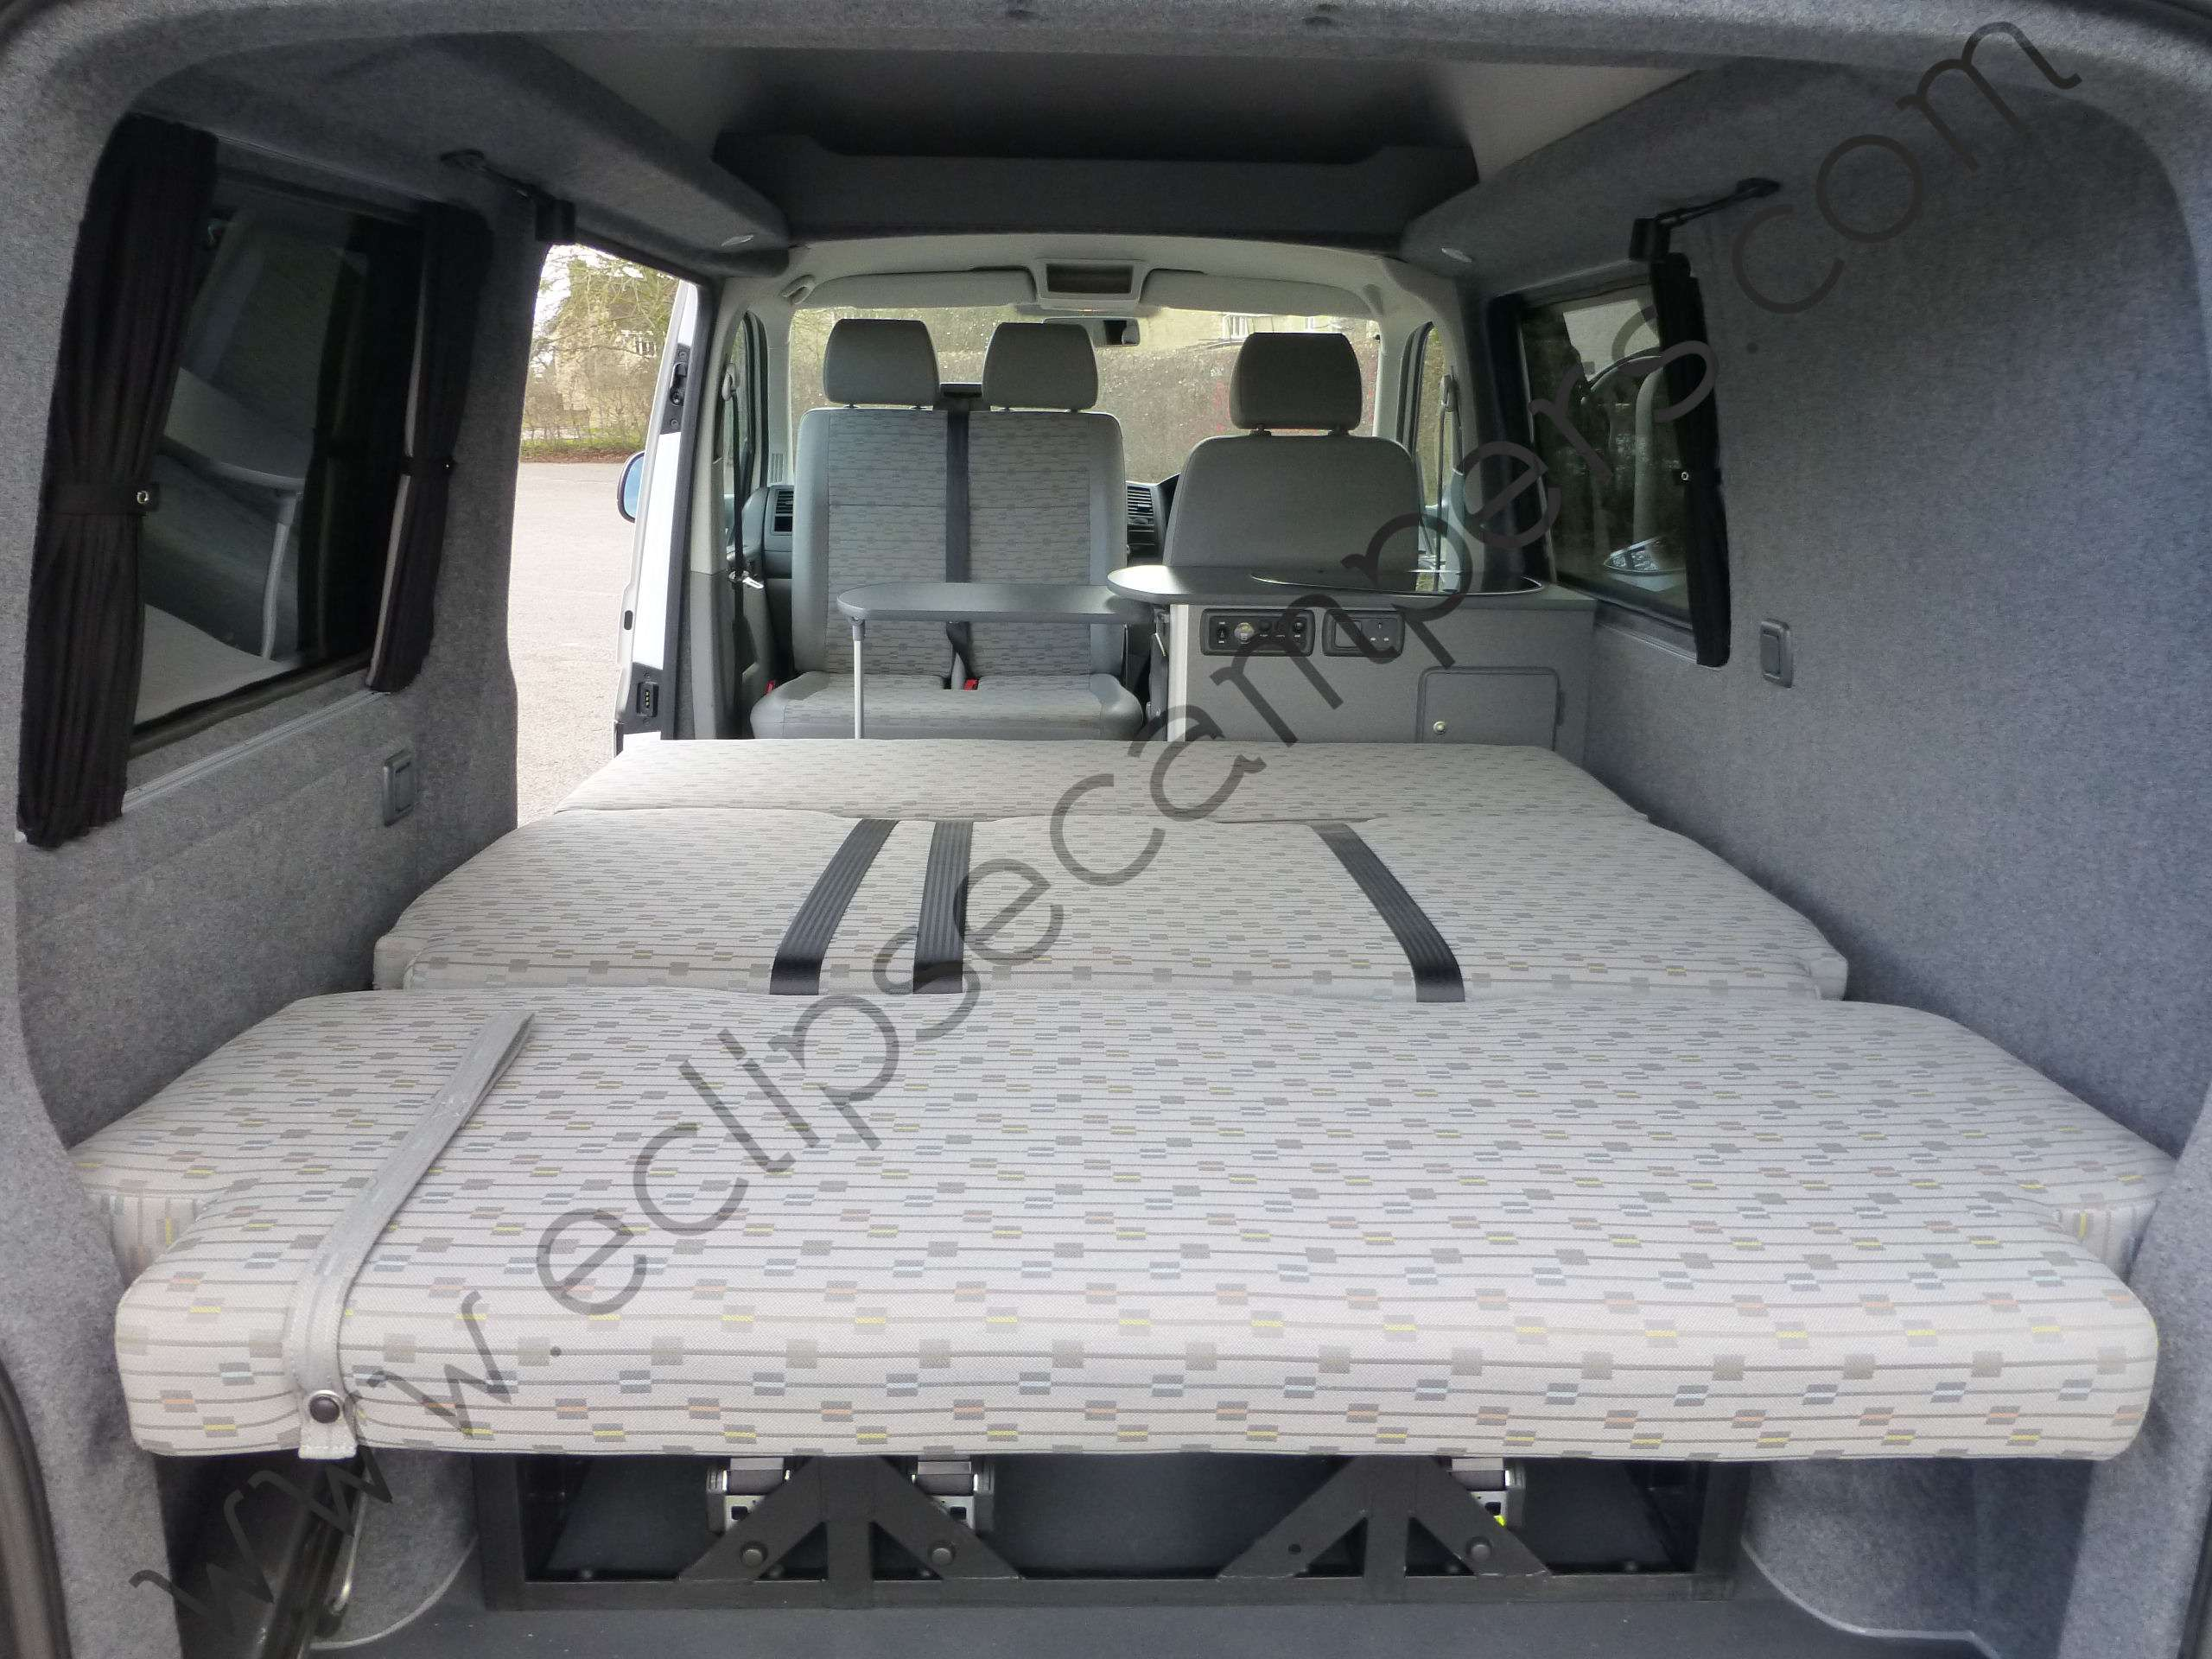 RIB Seat / Bed | Eclipse Custom Campers